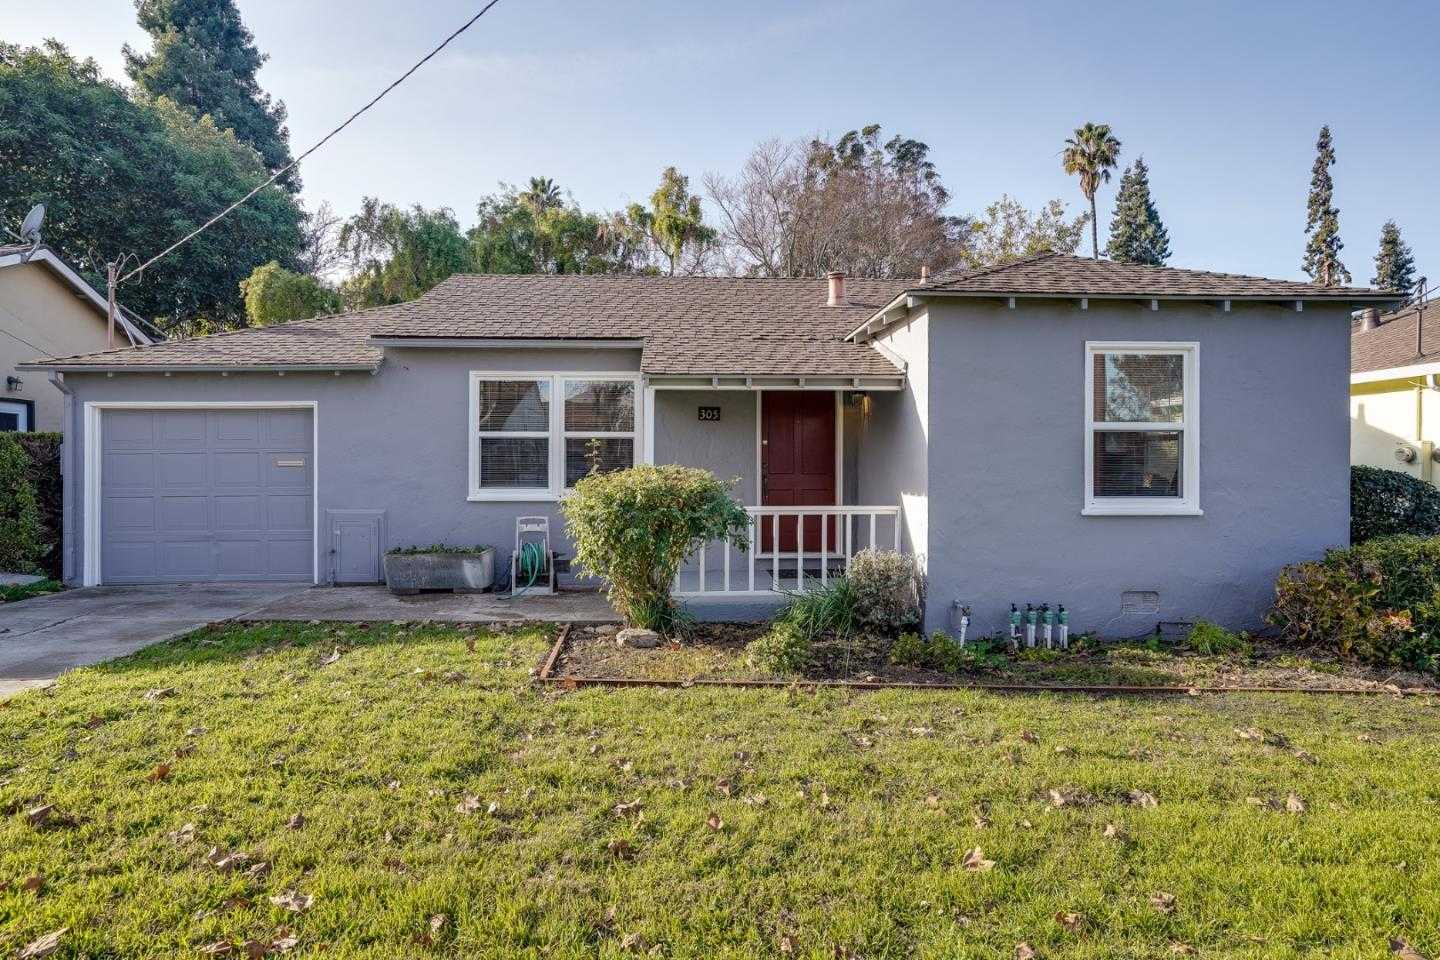 $1,175,000 - 2Br/1Ba -  for Sale in Sunnyvale